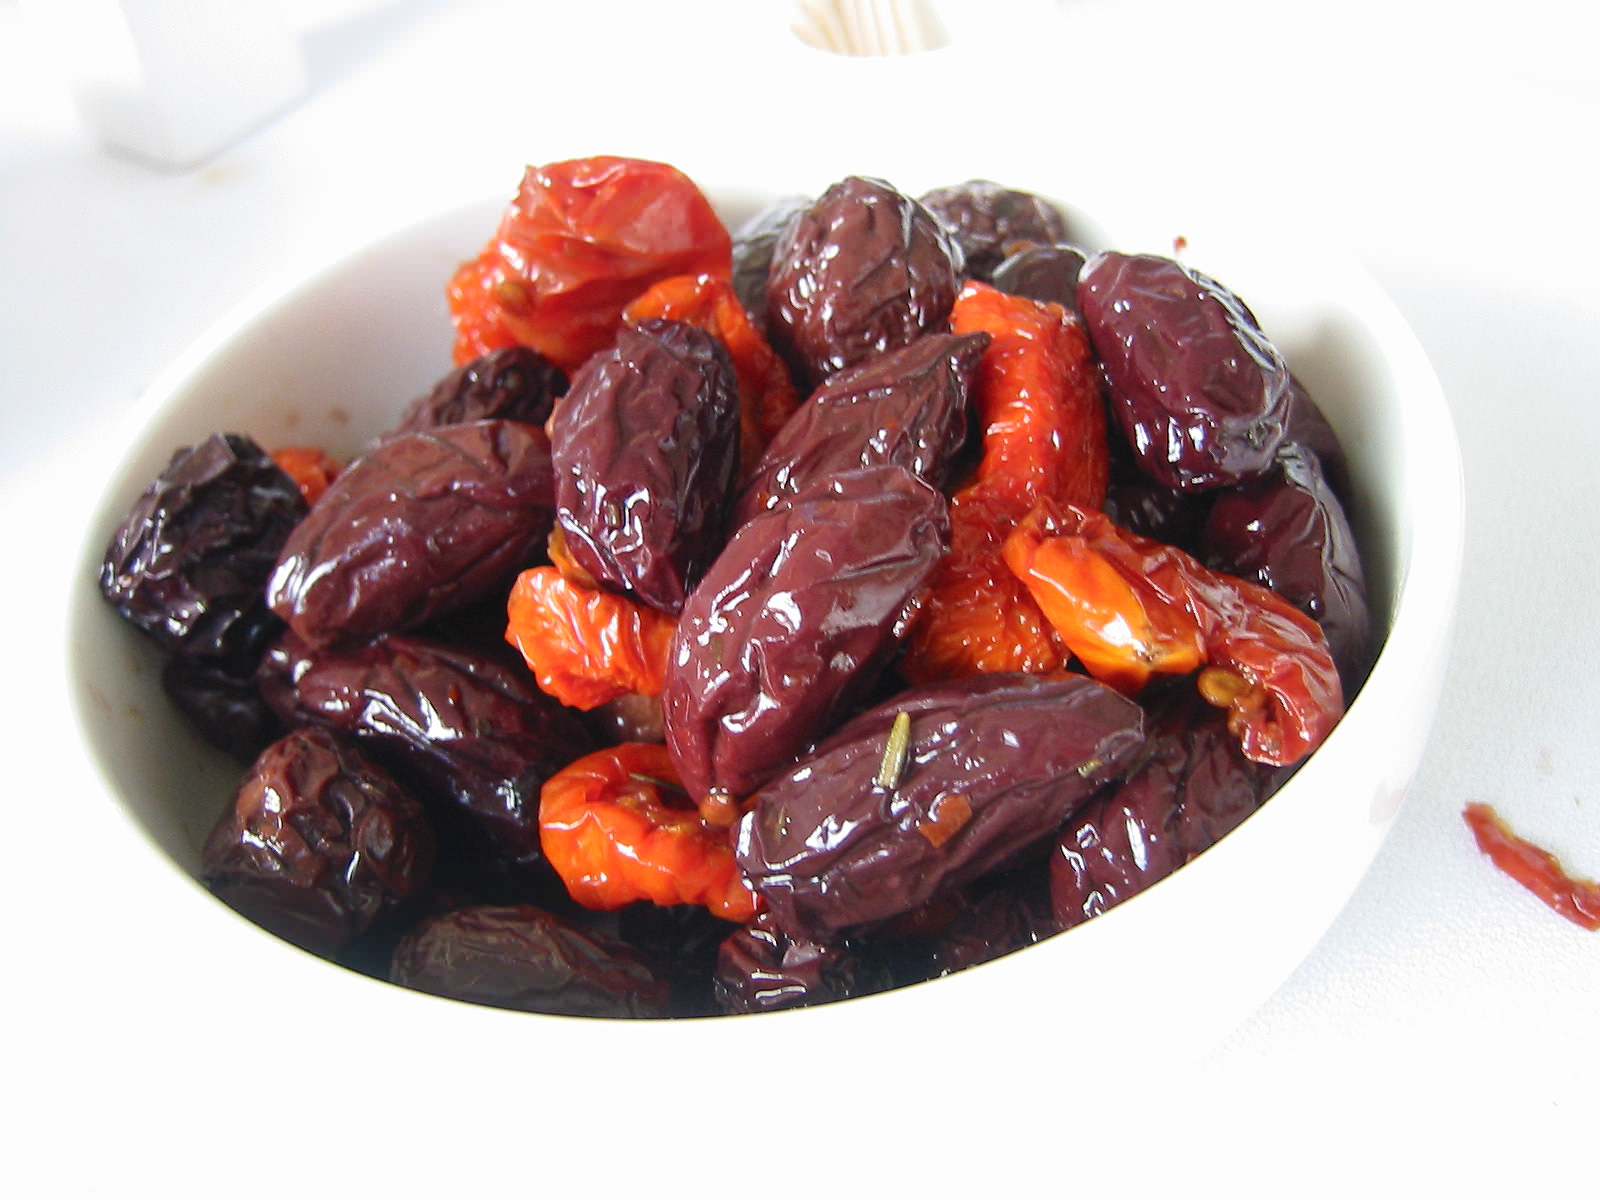 Sundried olives and tomatoes